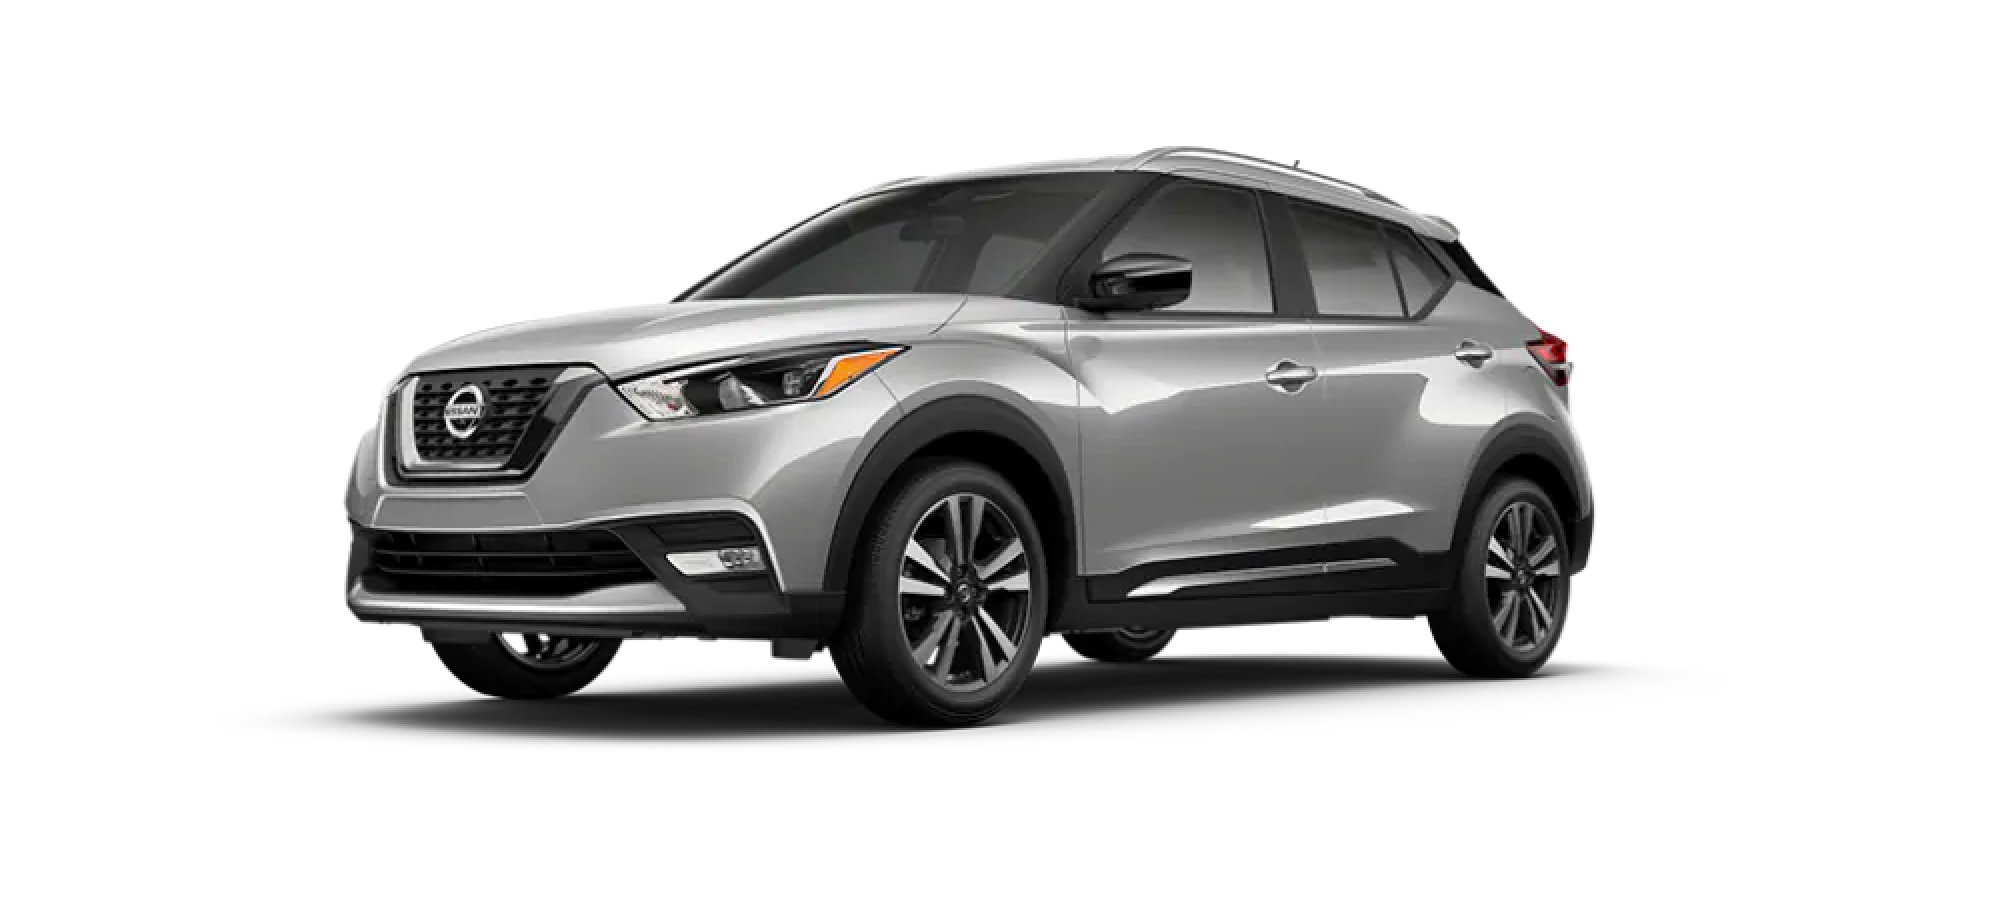 Brilliant Silver Metallic Nissan Kicks